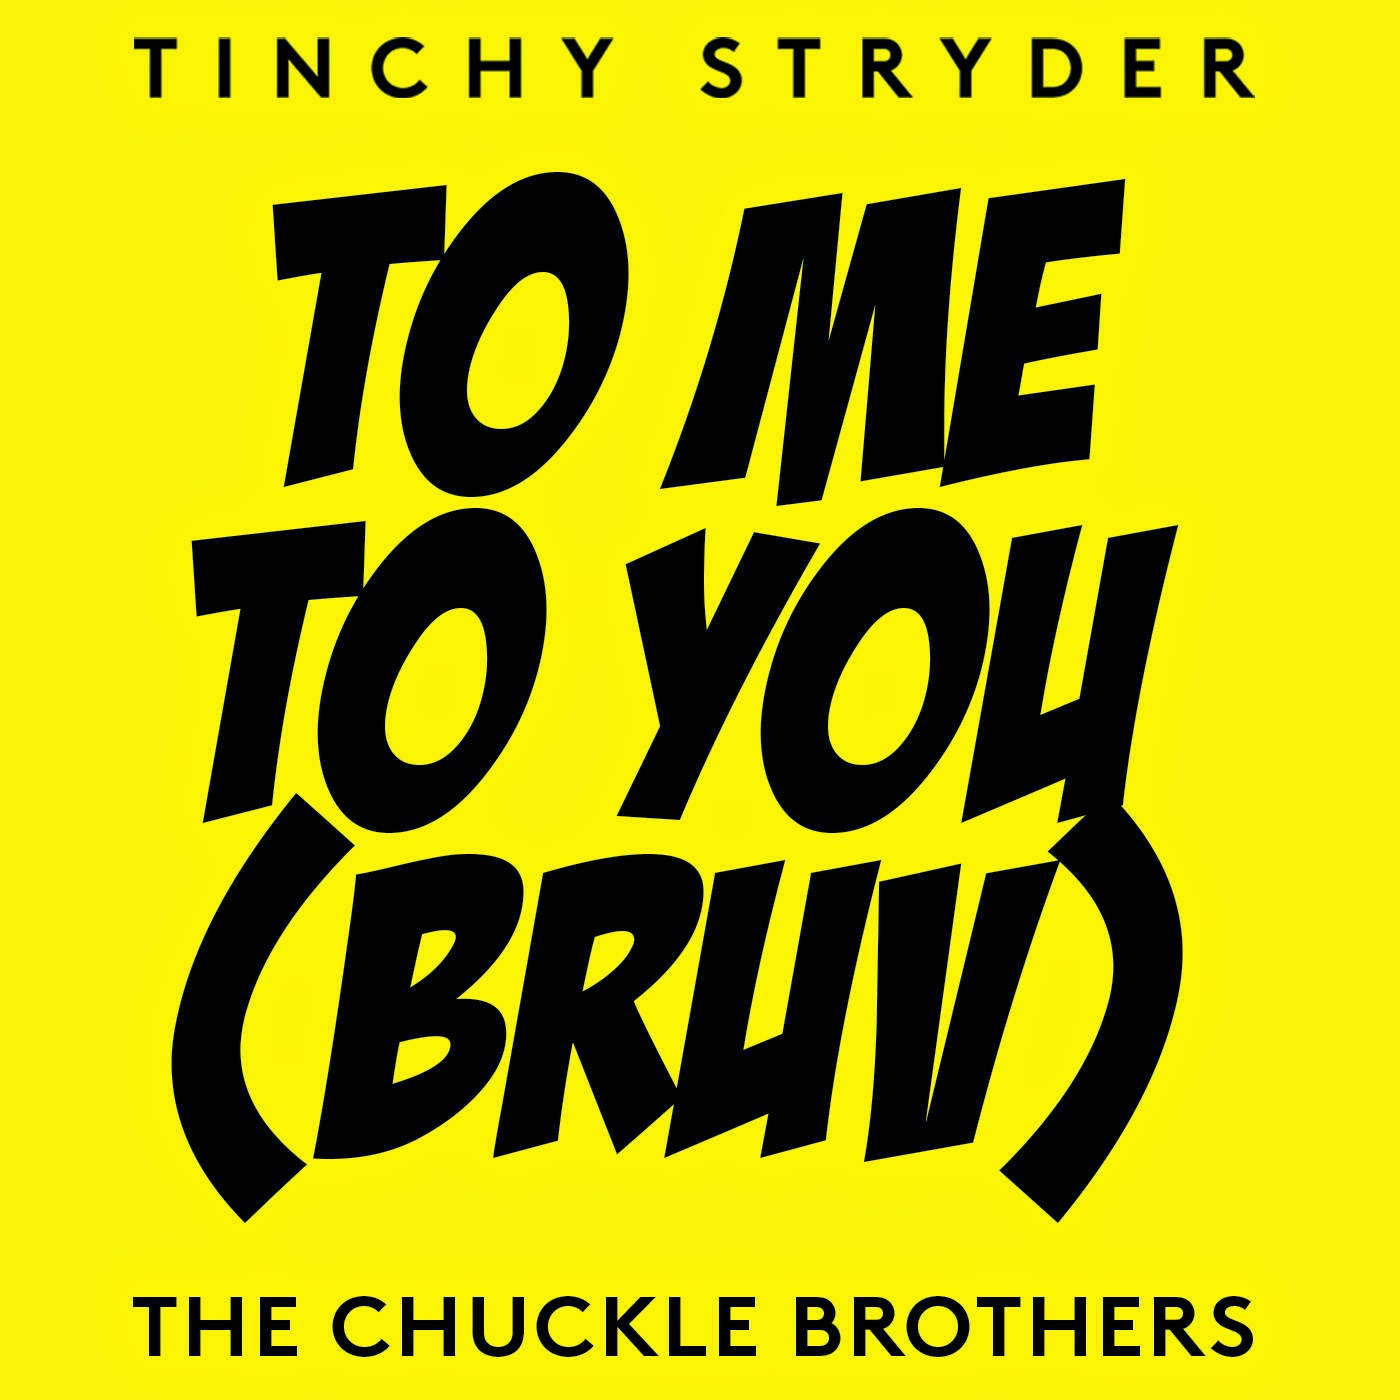 Tinchy Stryder & The Chuckle Brothers – To Me, To You (Bruv) – Single (2014) [iTunes Plus AAC M4A]